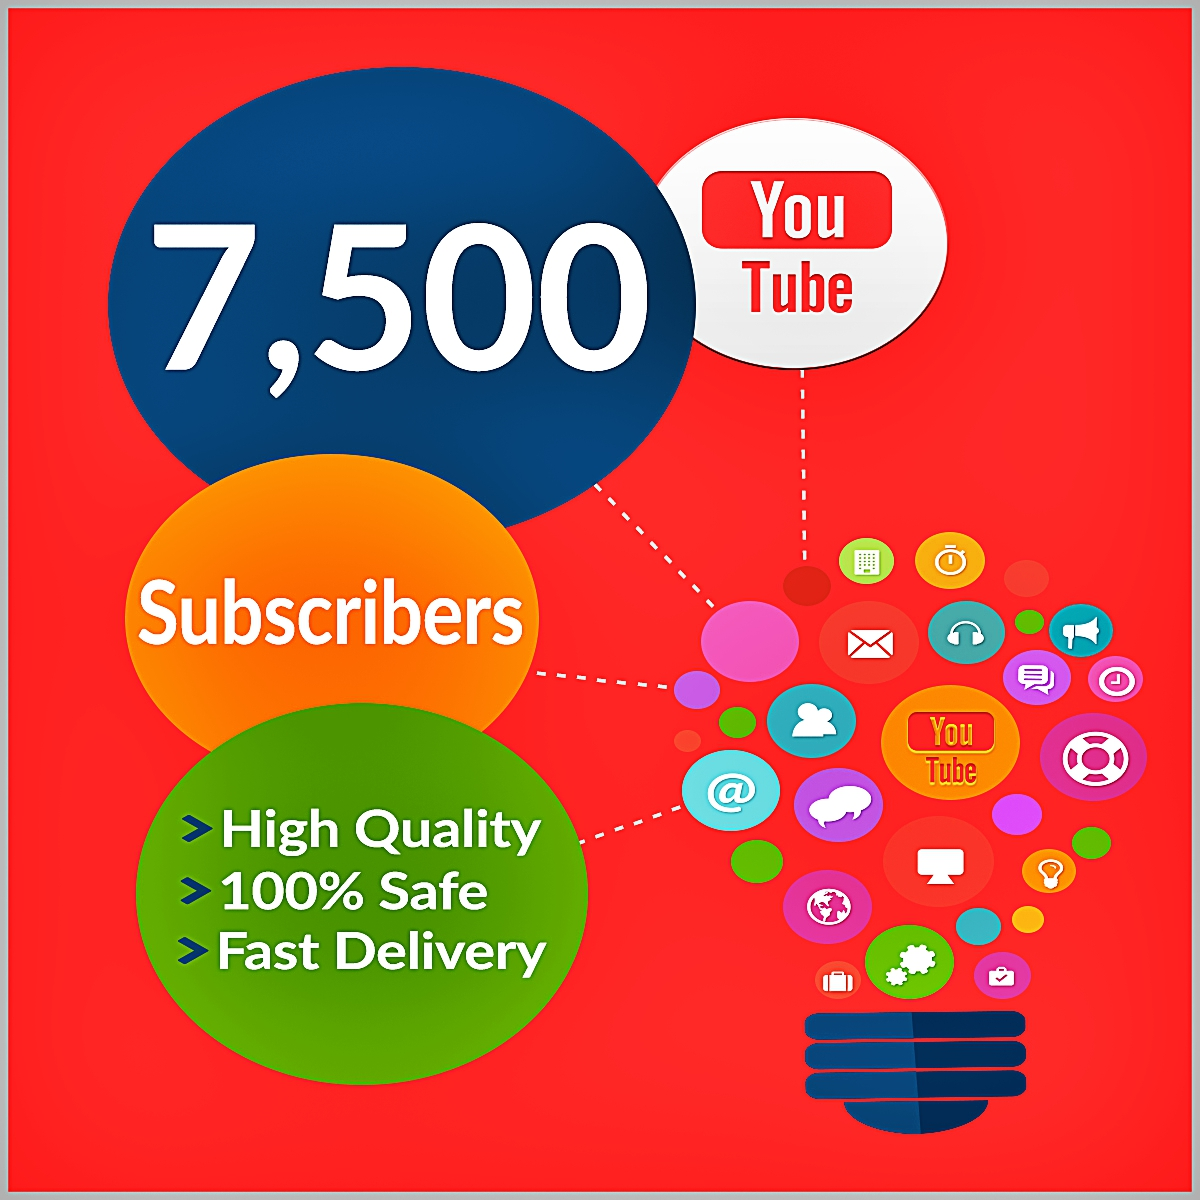 7500-YouTube-Subscribers